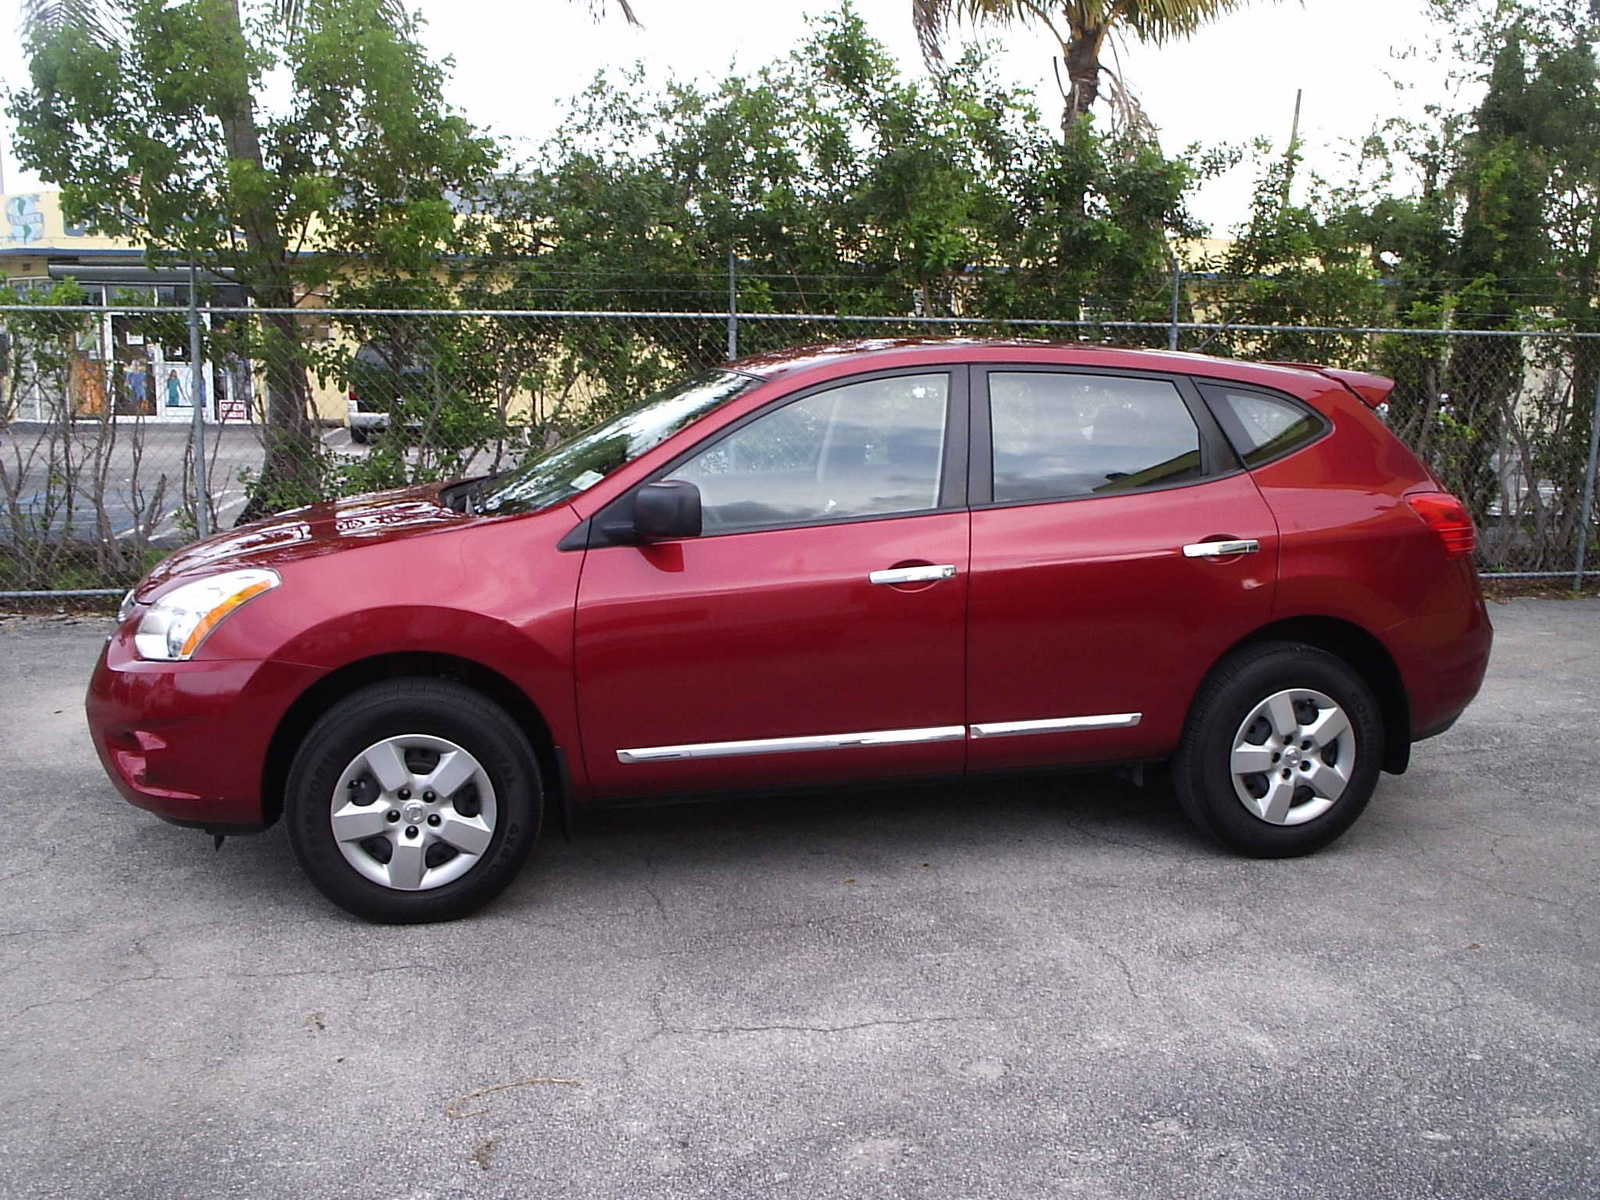 Used 2011 Nissan Rogue Pricing Edmunds Autos Post